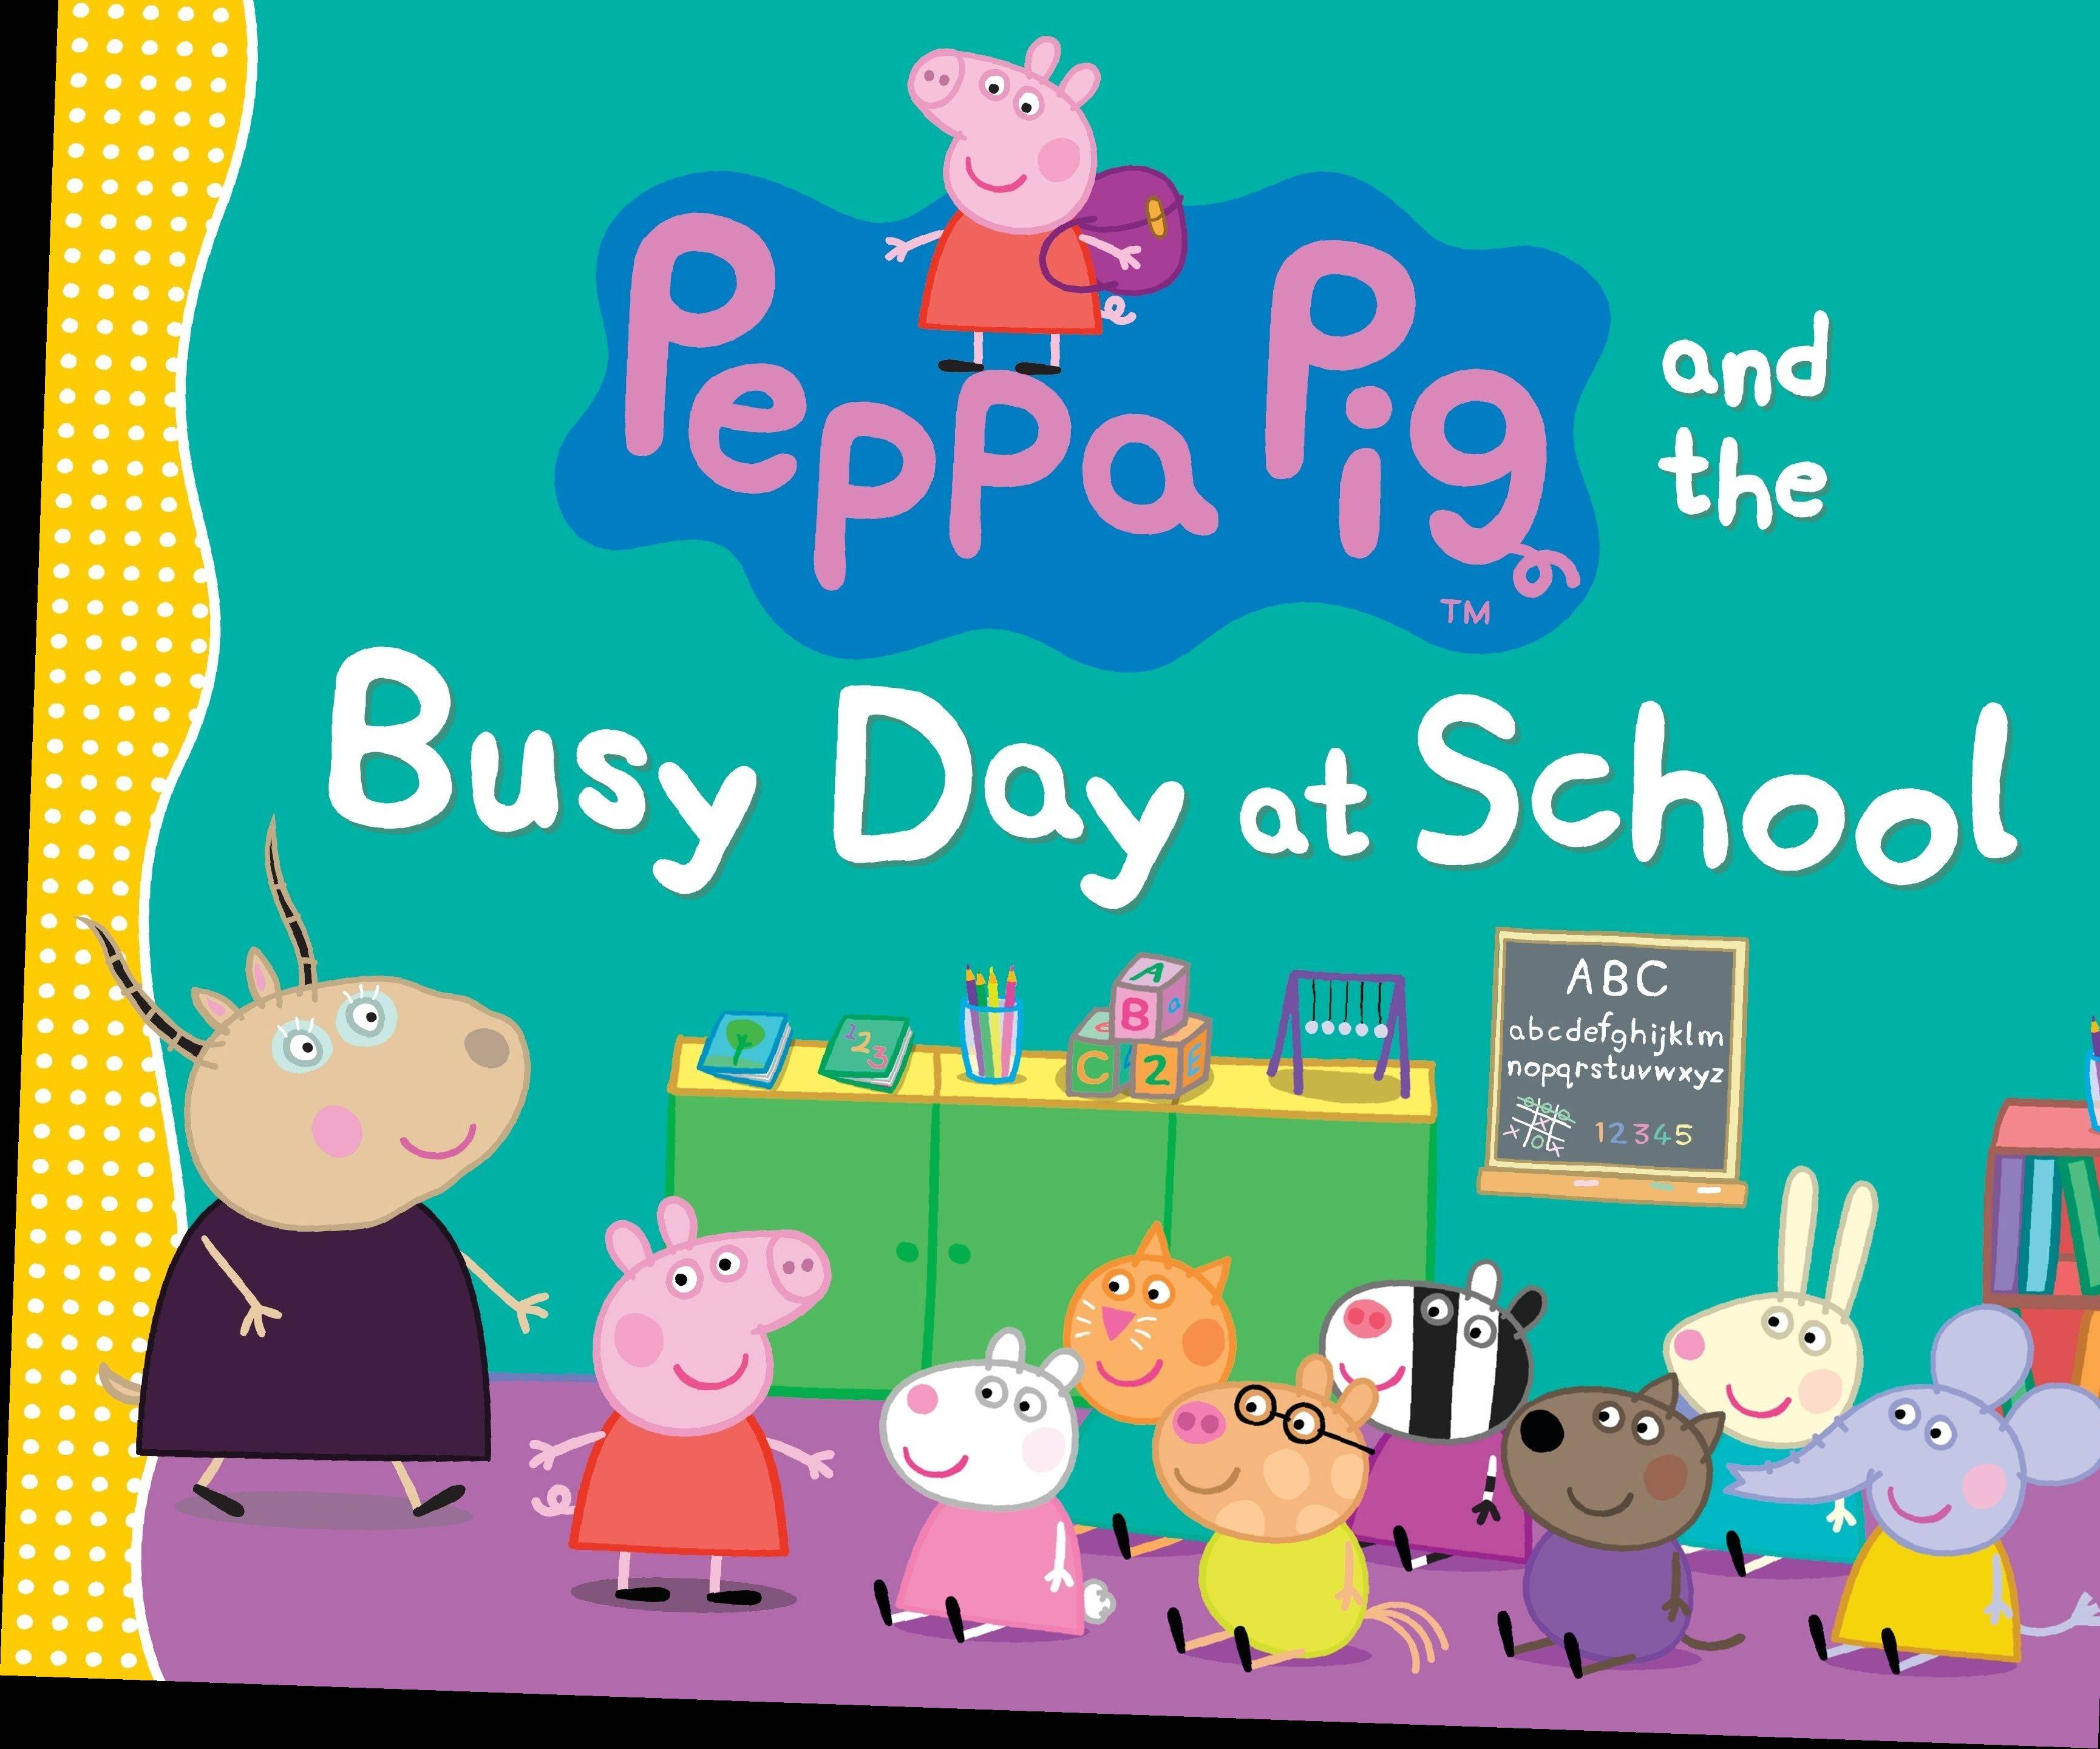 """Peppa Pig and the Busy Day at School,"" (Candlewick Press, 2013), $12.99, 32 pages."